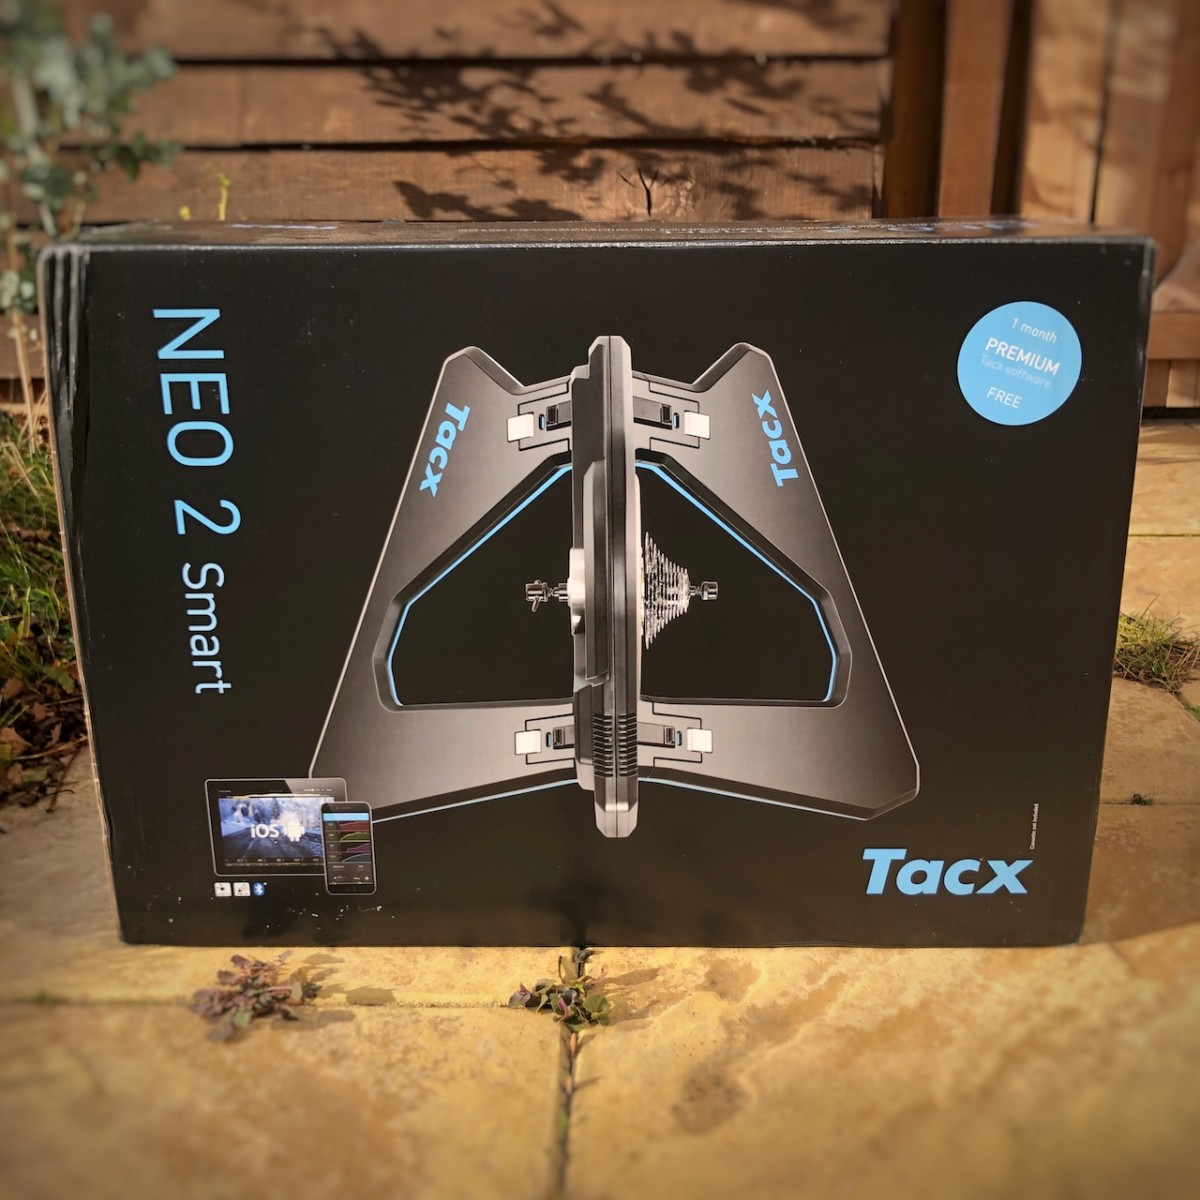 TitaniumGeek JPEG image CA20CB336803 1 Tacx NEO 2 Review | ZWIFT GEAR TEST Cycling Gear Reviews Smart Trainers Zwift  Zwift tacx neo 2 cycling   Image of JPEG image CA20CB336803 1